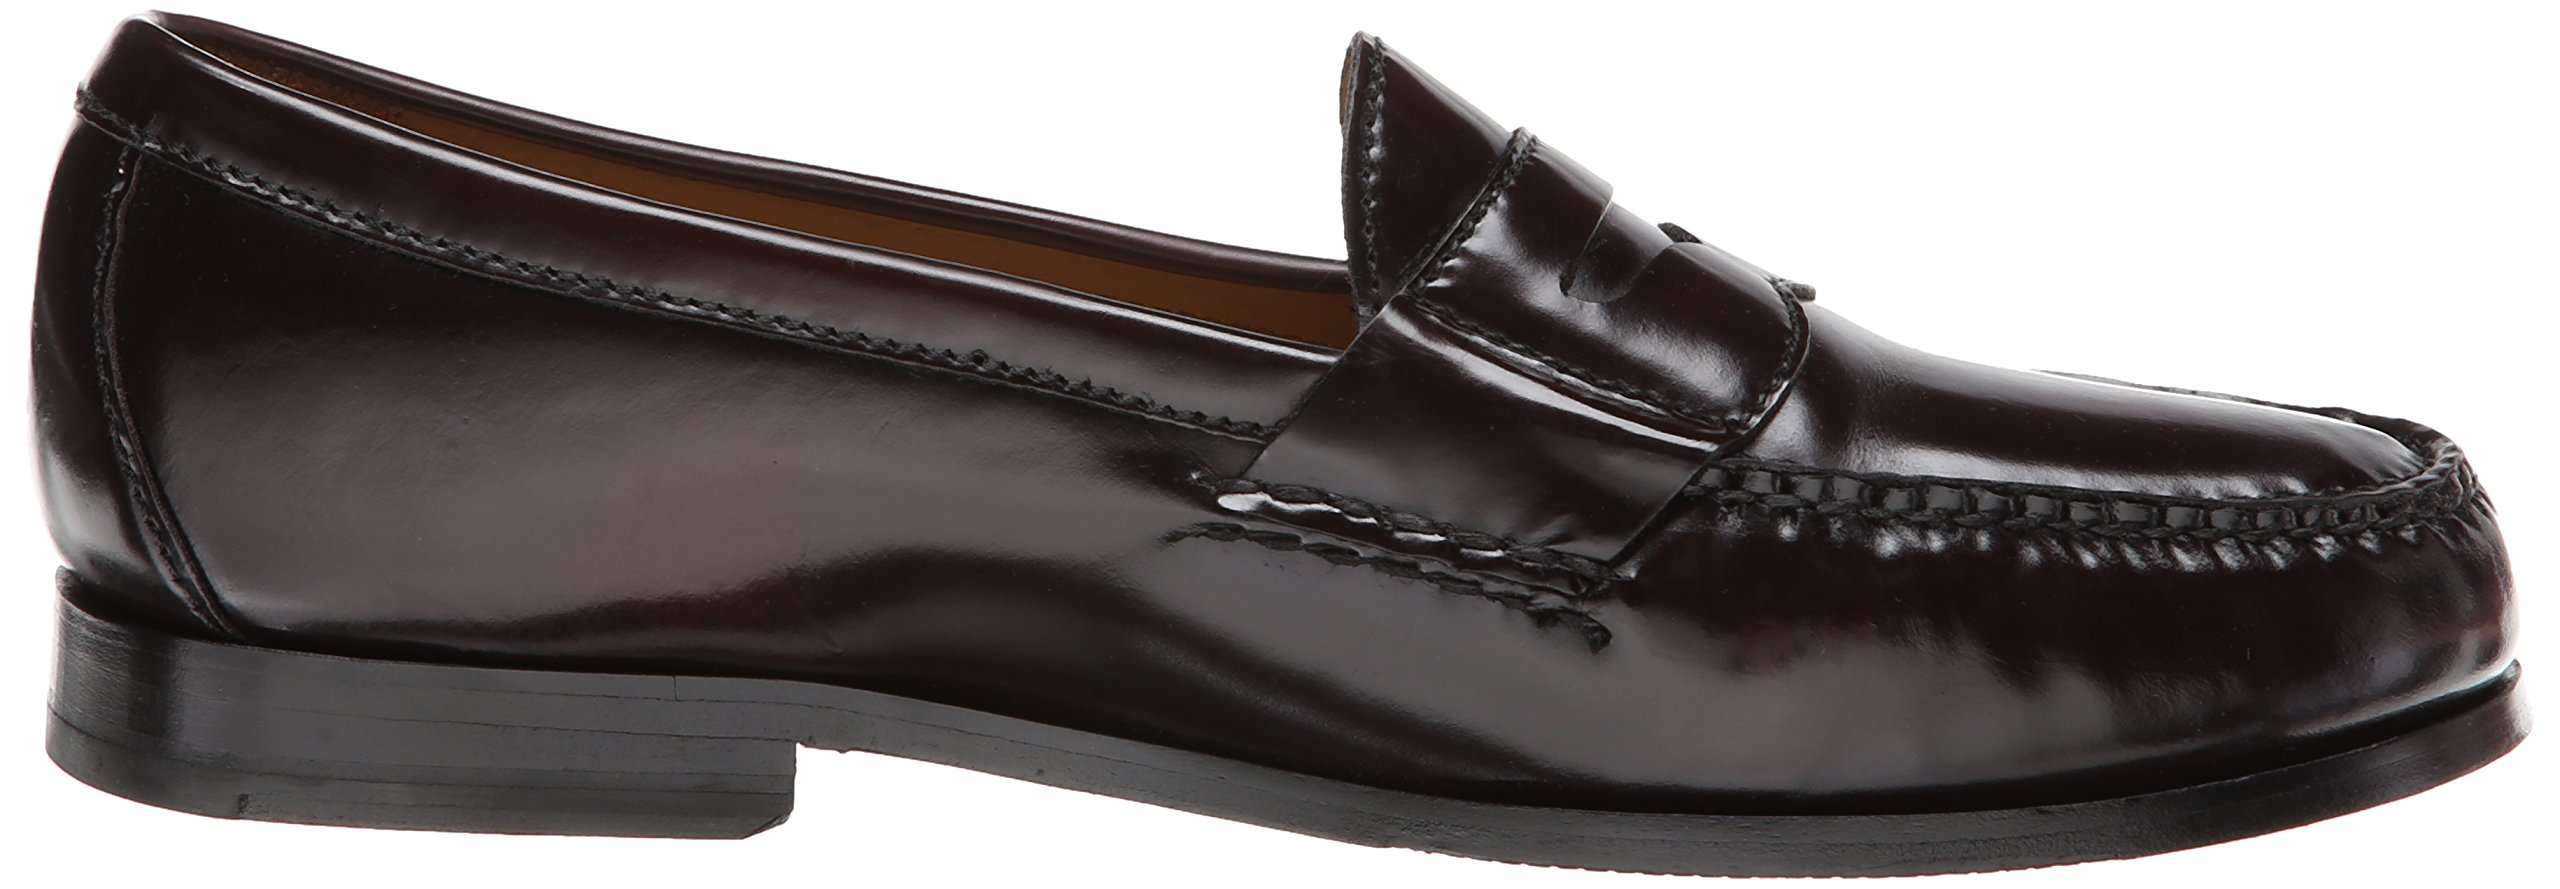 fc39fcf3399 Cole Haan Men s Pinch Grand Penny Loafer